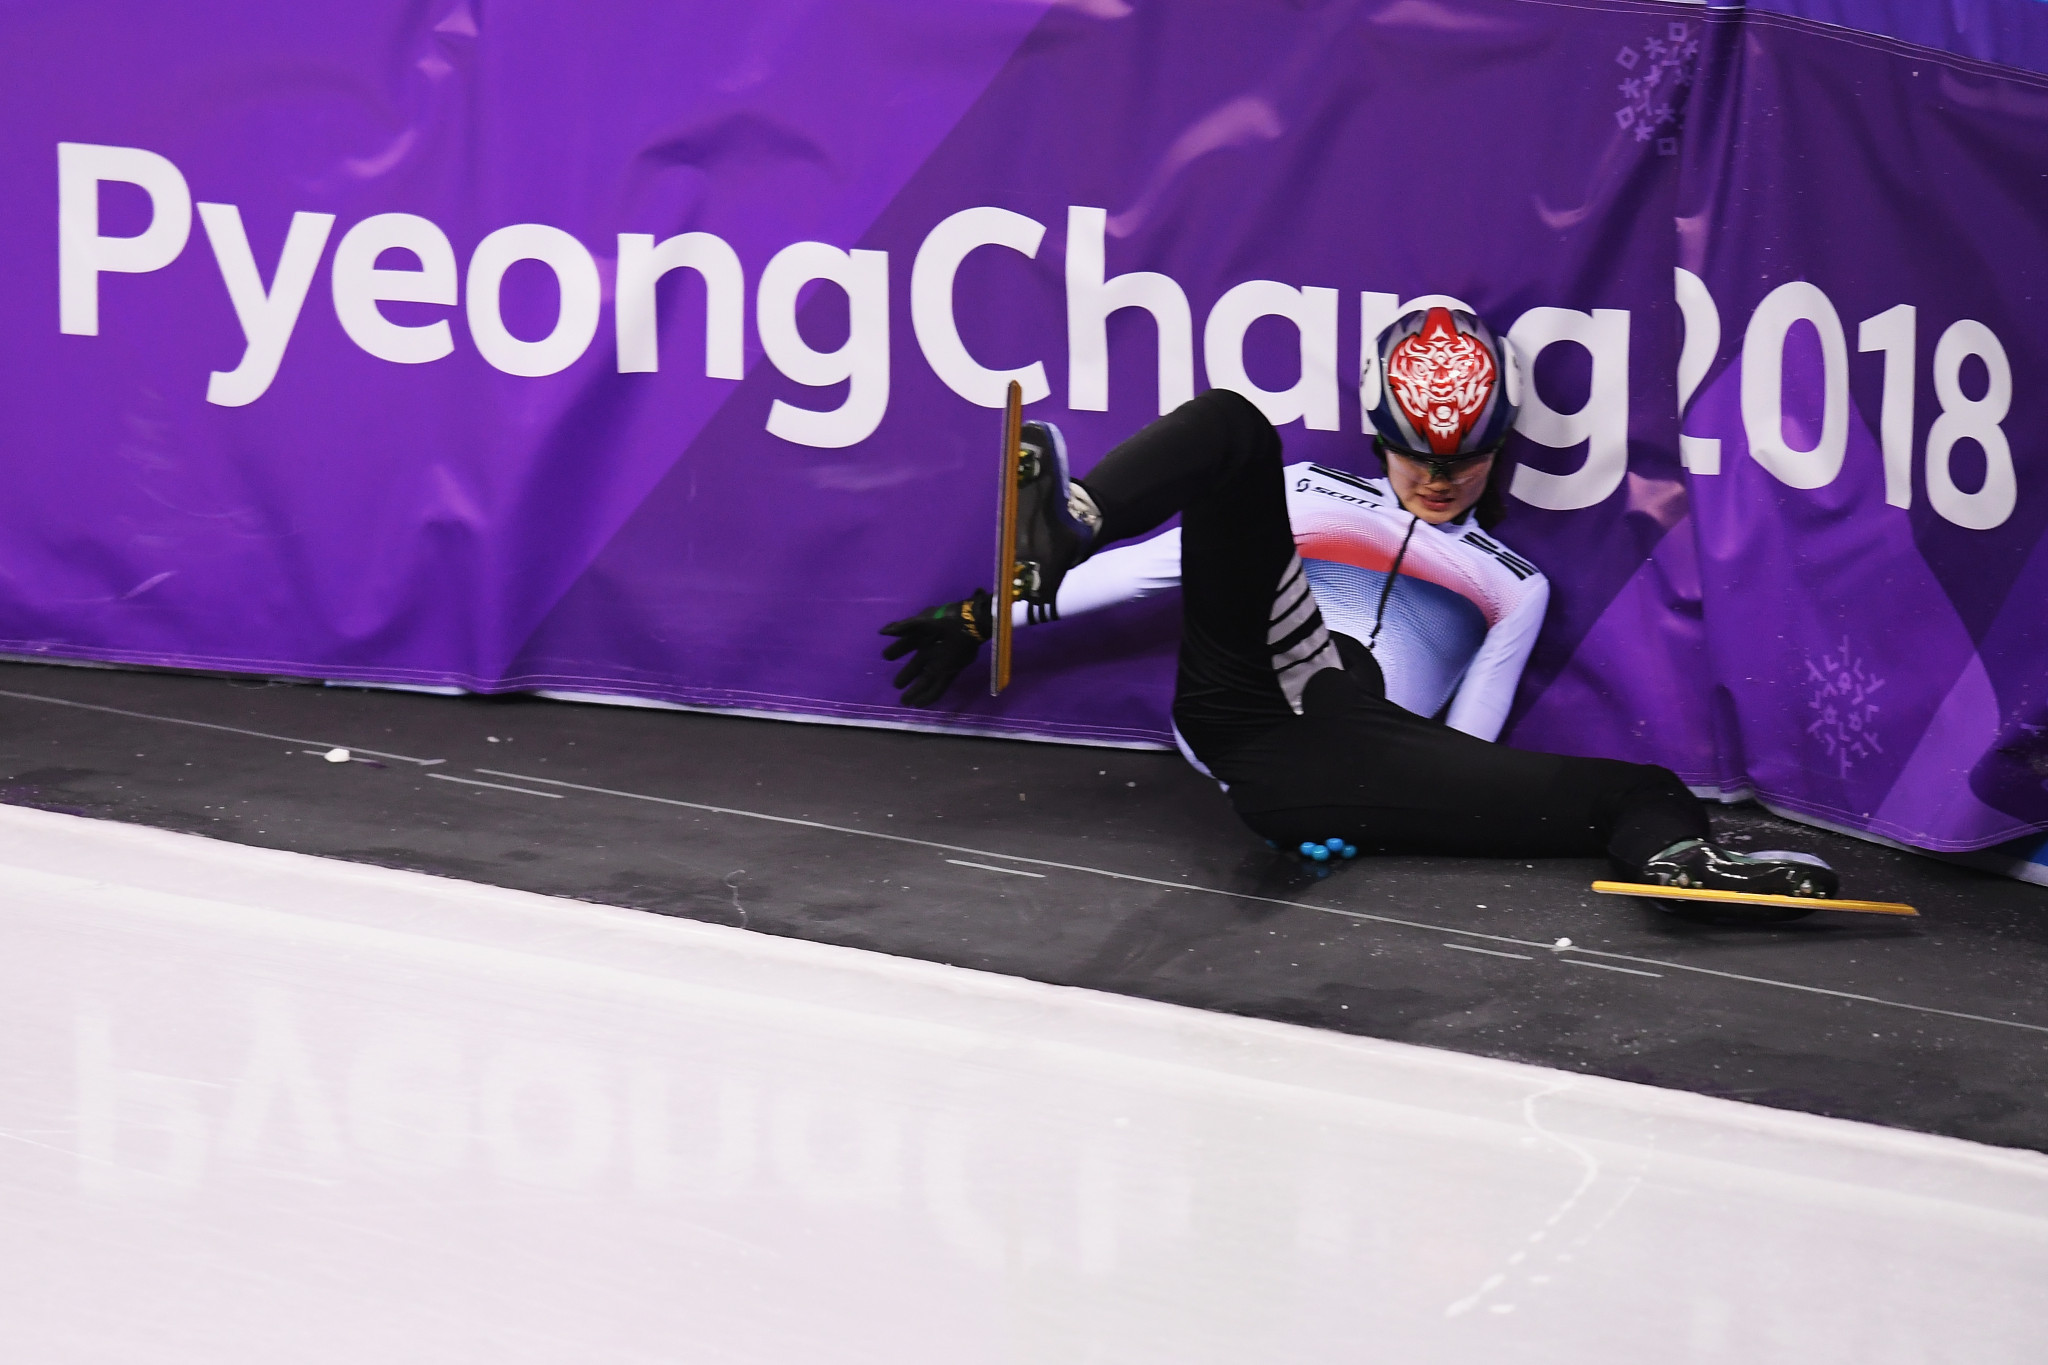 Shim Suk-hee claimed a fall she had during the 2018 Pyeongchang Games was caused by a concussion given to her by Cho Jae-beon ©Getty Images